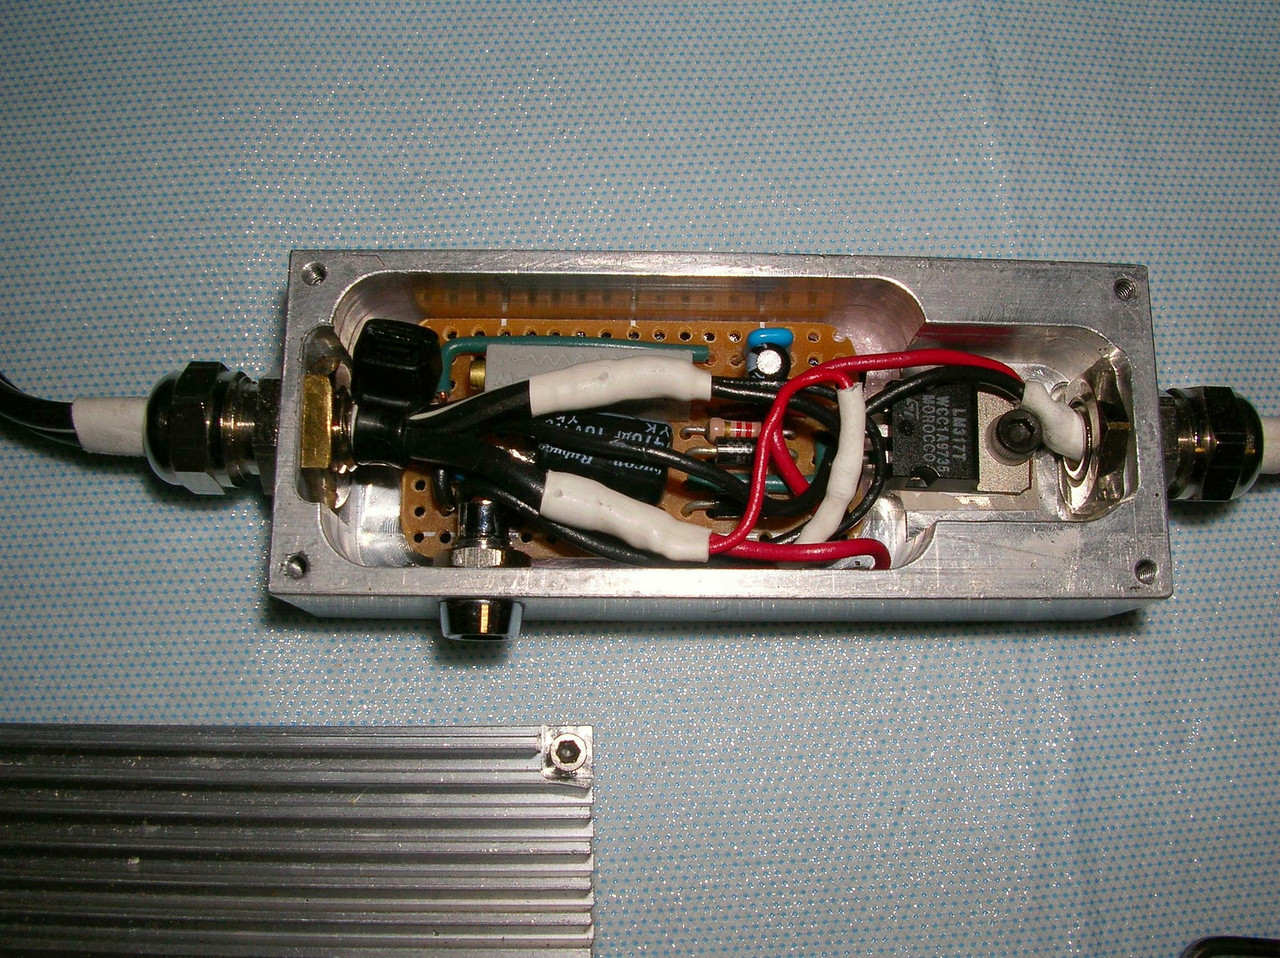 Powered by an LM317 Adjustable Linear Regulator for very clean DC power.  the Circuit board was placed inside a custom machined aluminum case.